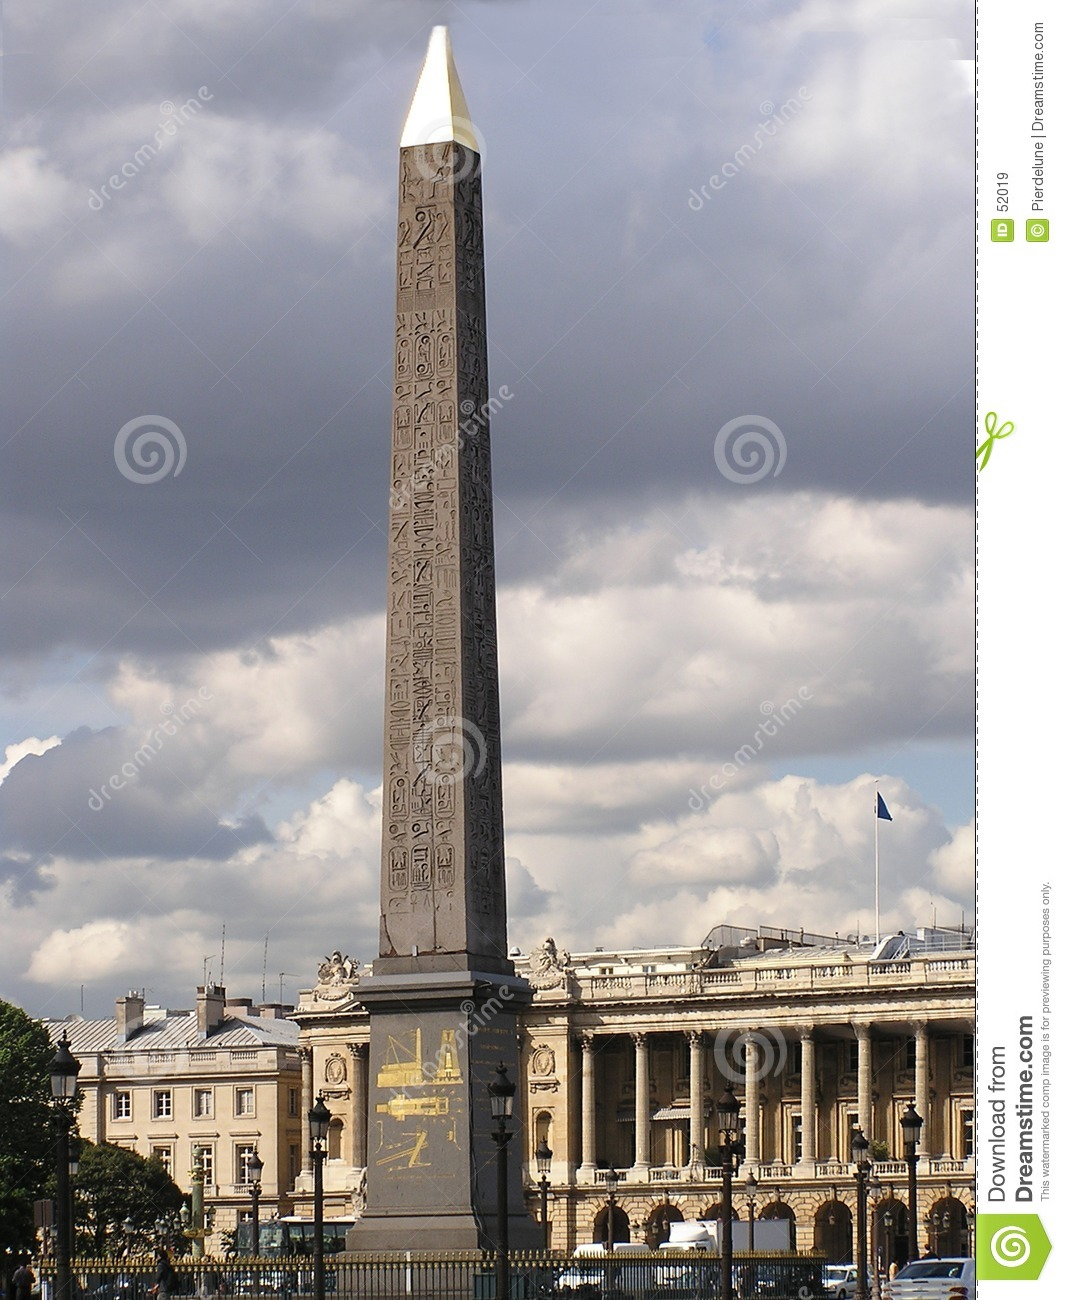 Obelisk of Concorde Place, Paris